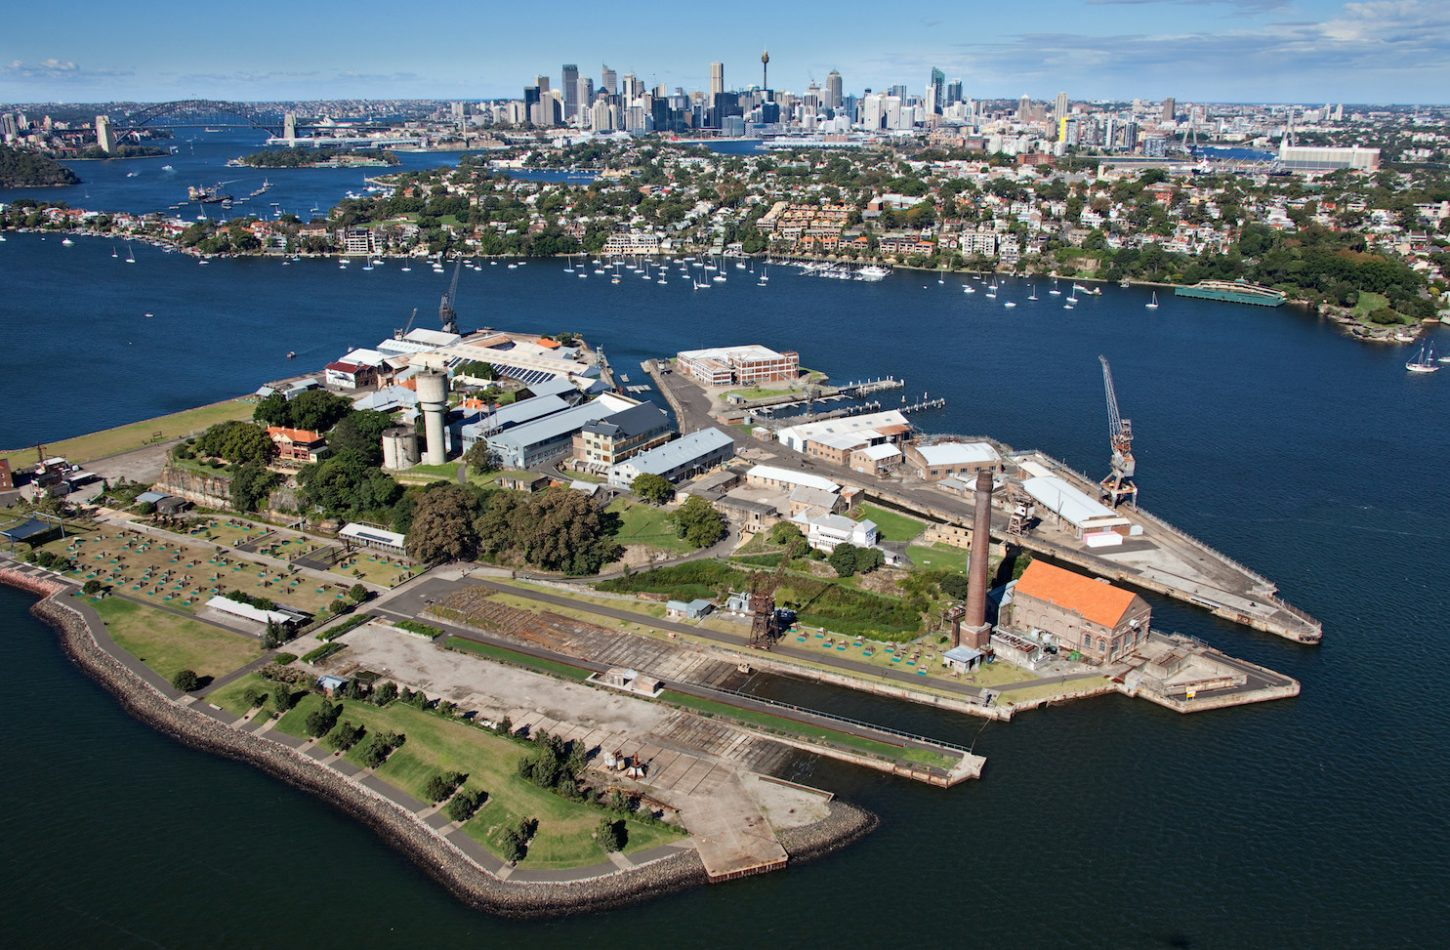 Bird's eye view of Cockatoo Island on Sydney Harbour. Photo: Ethan Rohloff (Destination NSW)